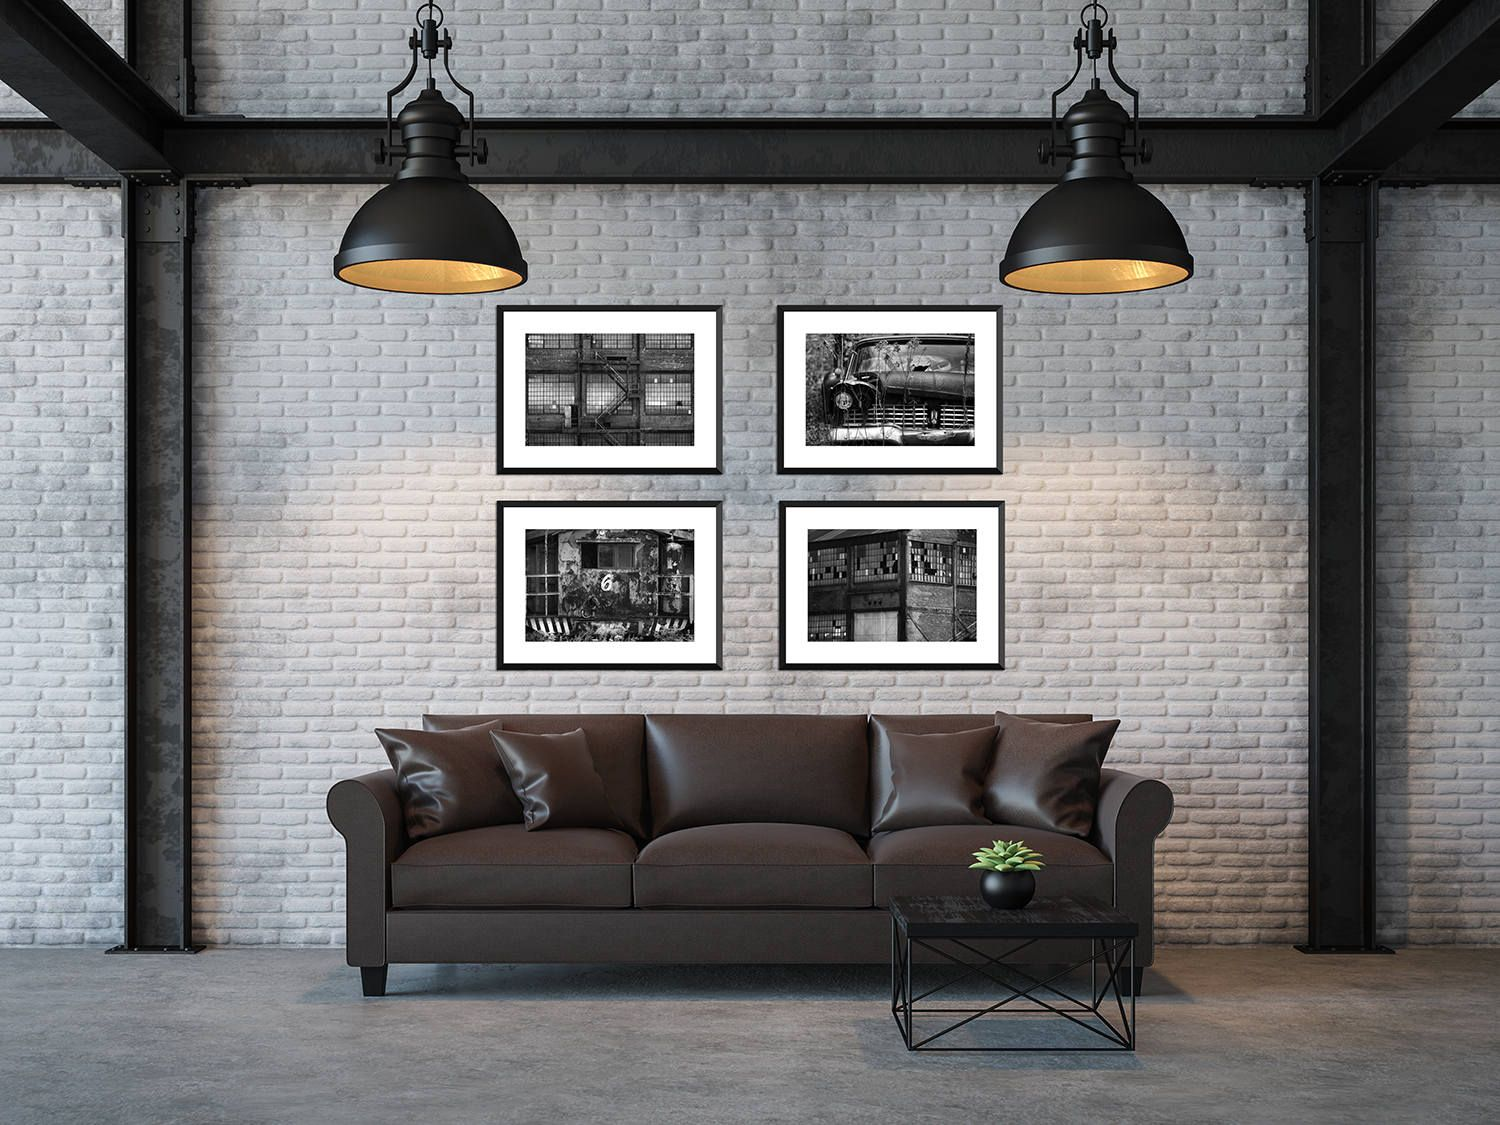 Industrial B W Print Set Set Of 4 Retro Masculine Prints Loft Style Home Decor Man Art Apocalyptic Decor Old Building And Car Wall Art Loft Style Homes Loft Style Apartment Wall Art